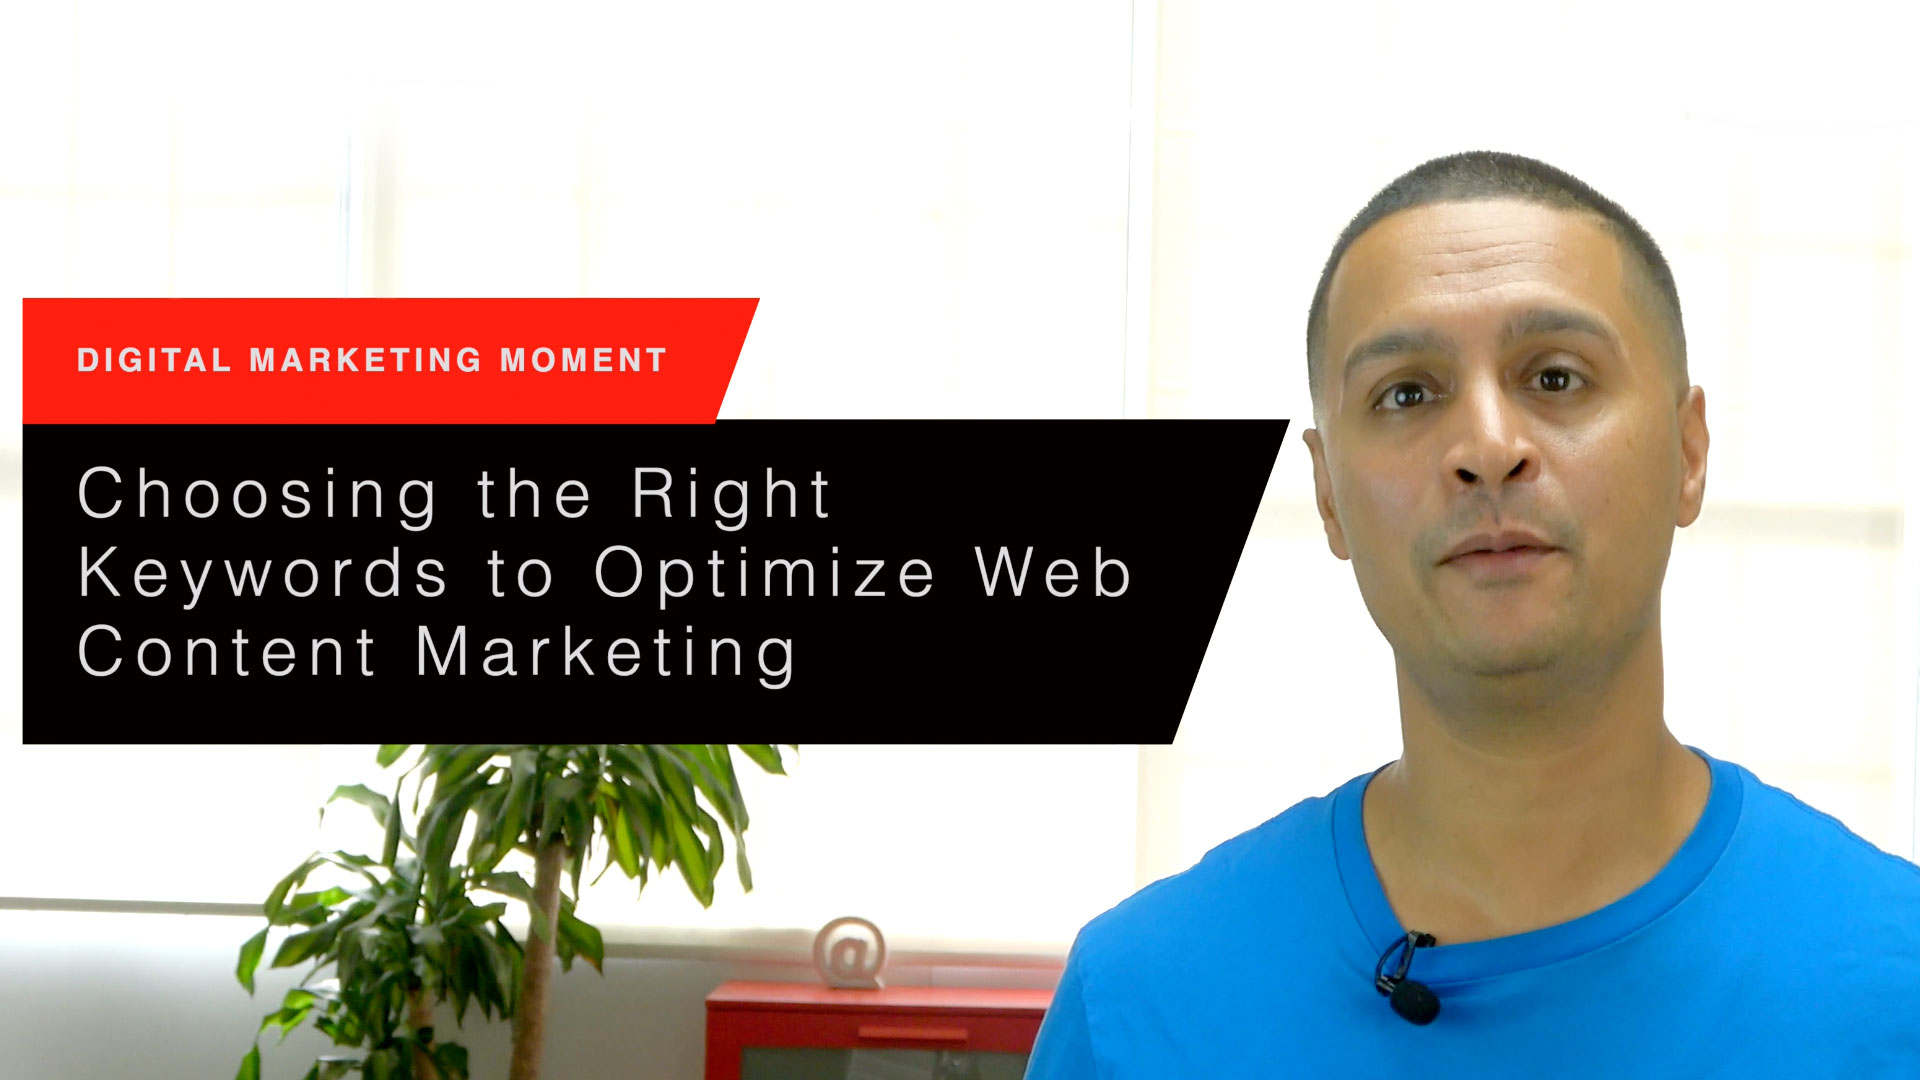 Choosing the Right Keywords to Optimize Web Content Marketing